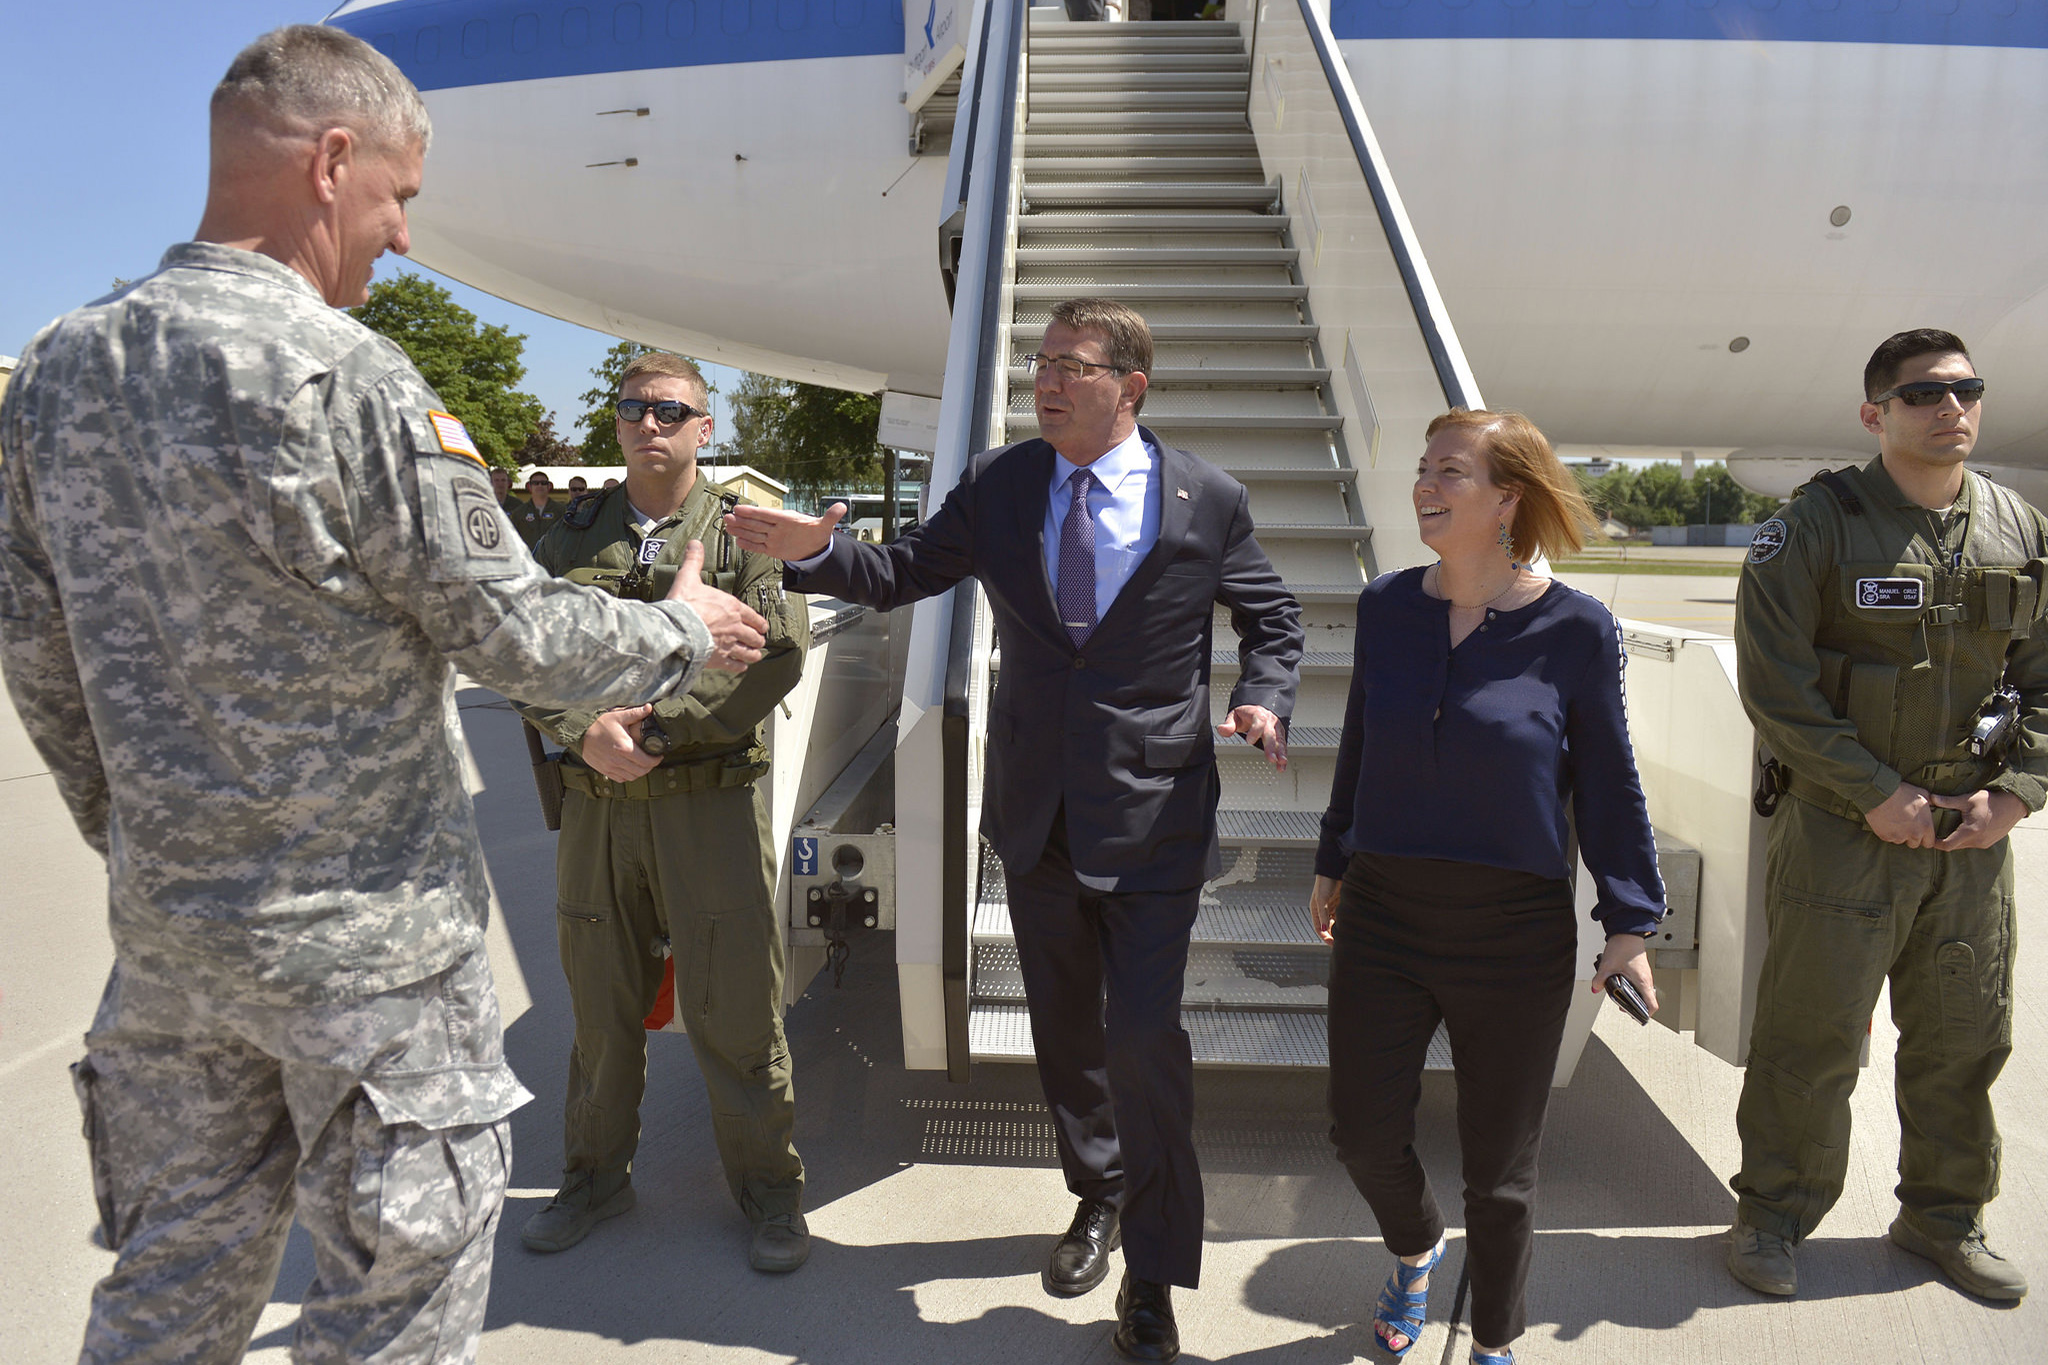 U.S. Army Gen. David M. Rodriguez, commander of U.S. Africa Command, greets U.S. Defense Secretary Ash Carter, left, and his wife, Stephanie, as they arrive in Stuttgart, Germany, June 4, 2015, where Carter hosted a troop talk with U.S. service members. Carter is wrapping up a trip that also took him to the Asia-Pacific region where he met with allies and partners to advance the next phase of the rebalance. DoD photo by Glenn Fawcett